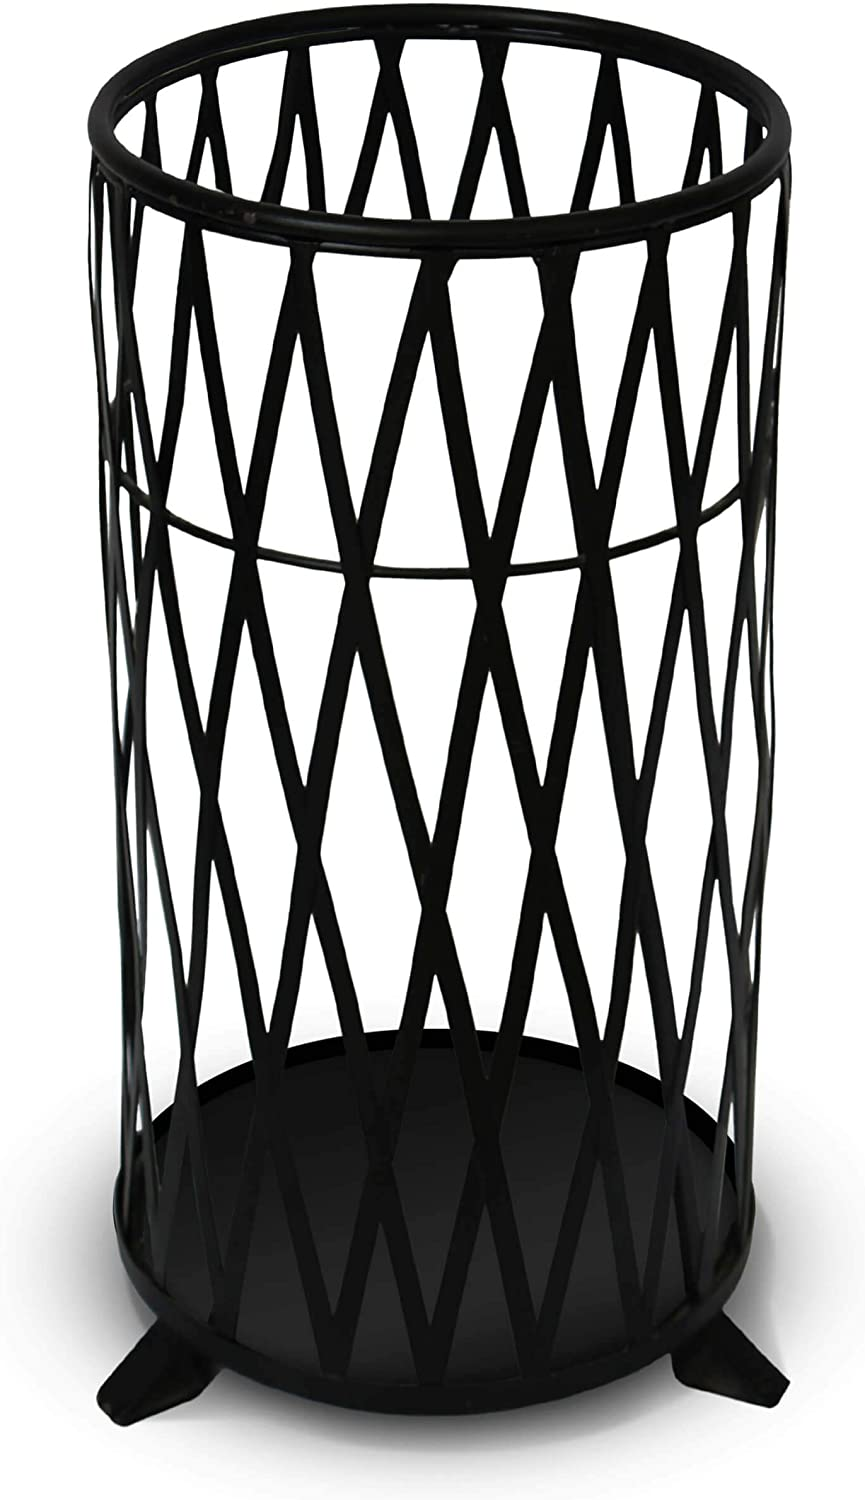 17 Rustic Metal Umbrella Stand – Rustic HANDCRAFTED Umbrella Holder For Home Indoor Outdoor. Rustproof Black Umbrella Rack and Cane Stand Handwoven Iron Umbrella Bucket Black – 17